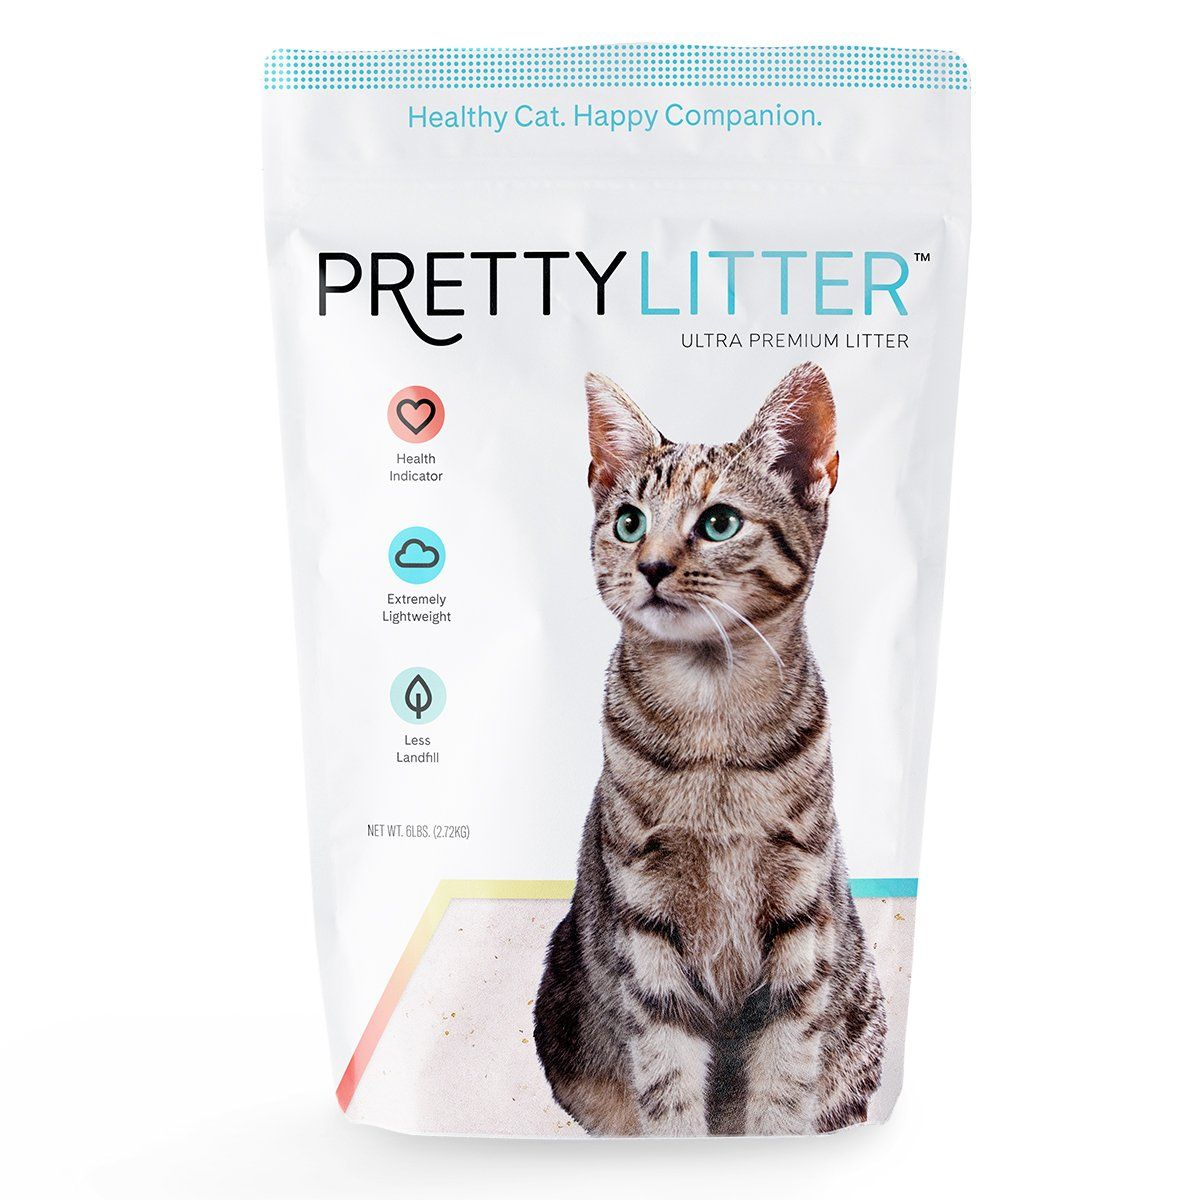 One Month of PrettyLitter Health Monitoring Cat Litter